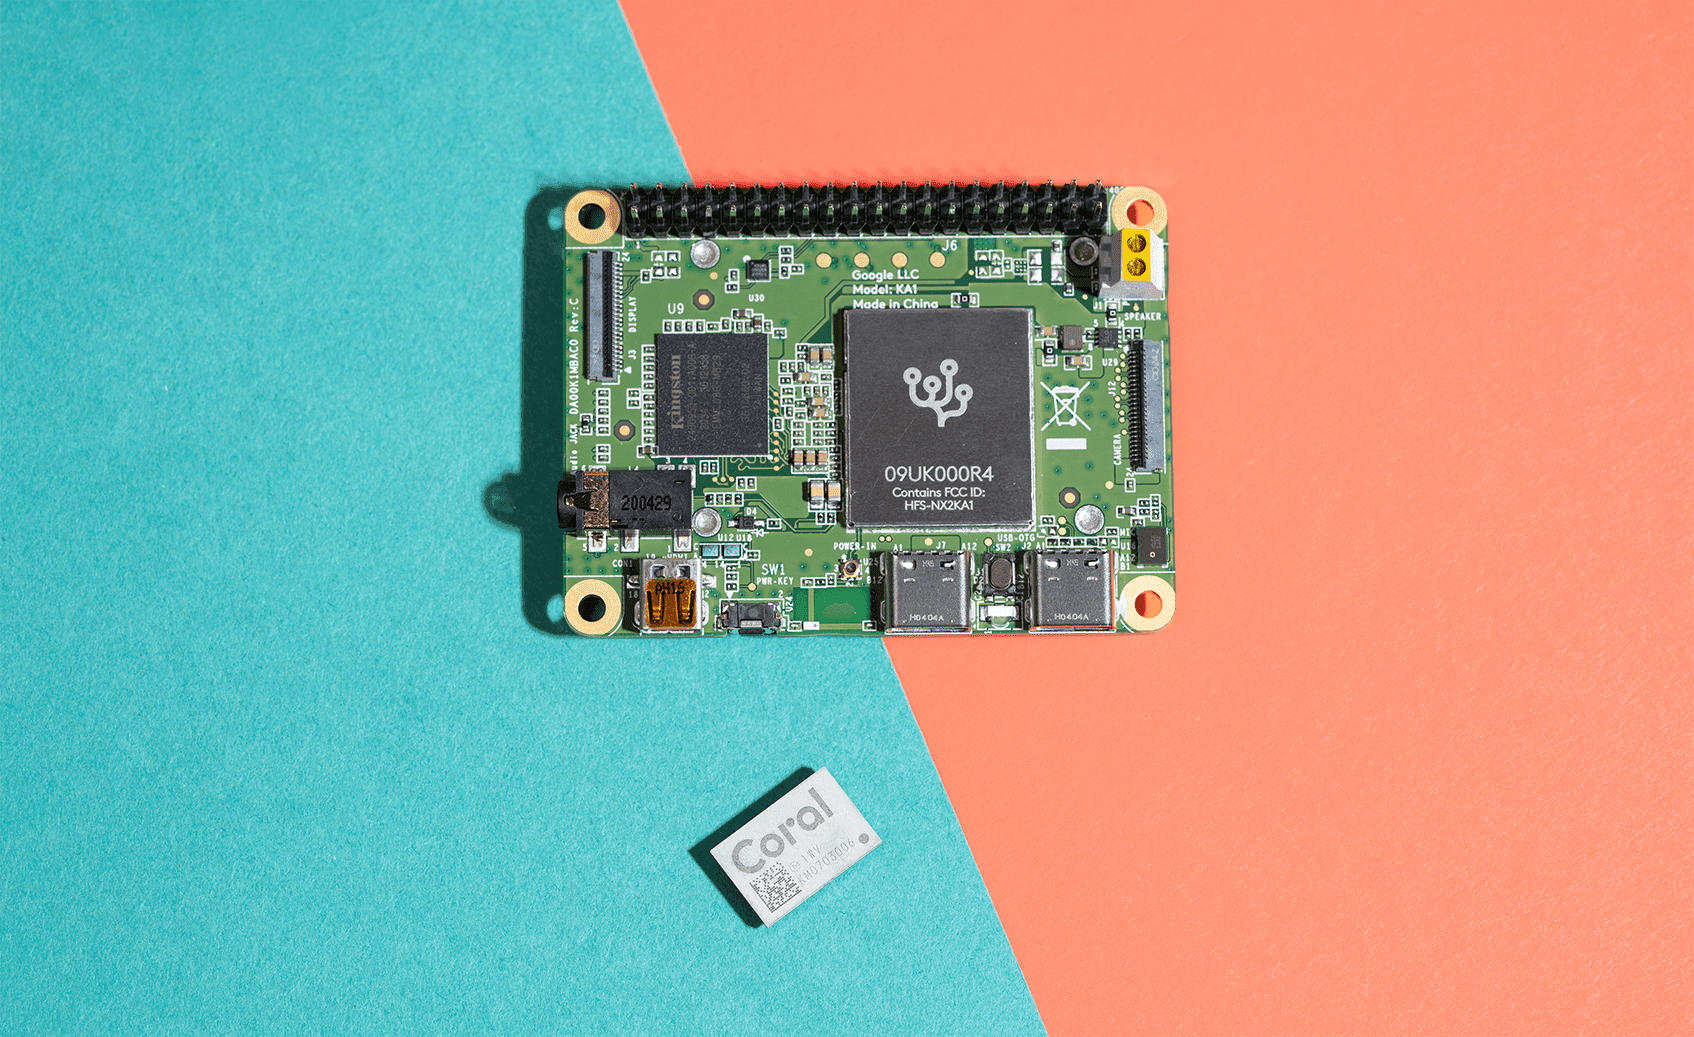 Coral Dev Board Mini and Accelerator Module feature Google's Edge TPU co-processor to accelerate AI at the edge.